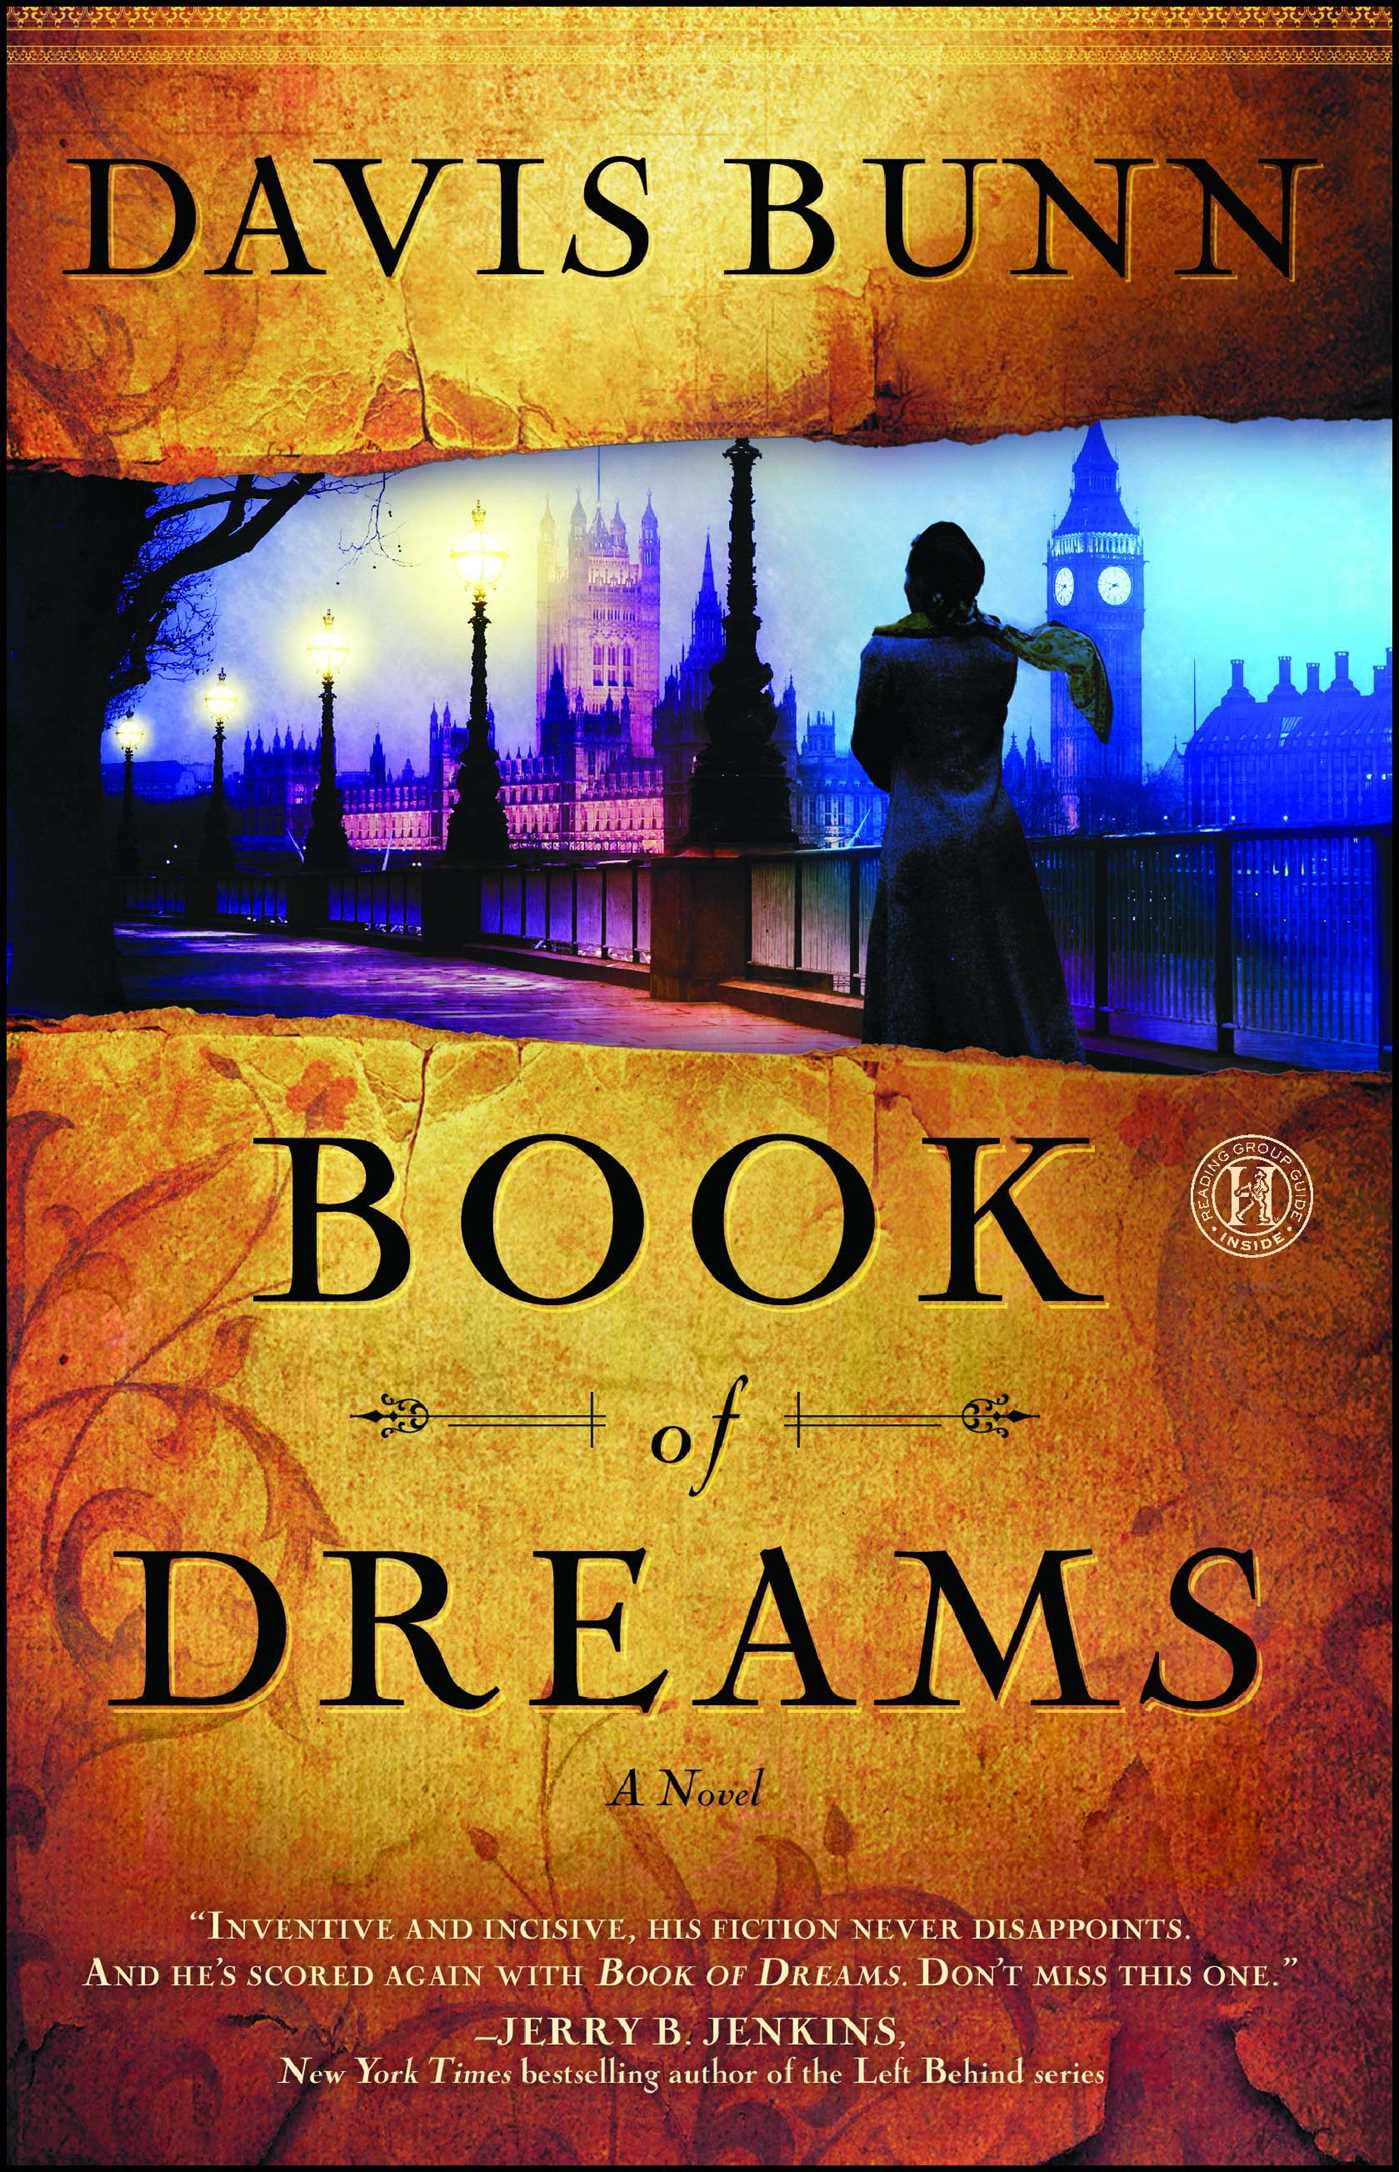 Book of dreams 9781416556701 hr